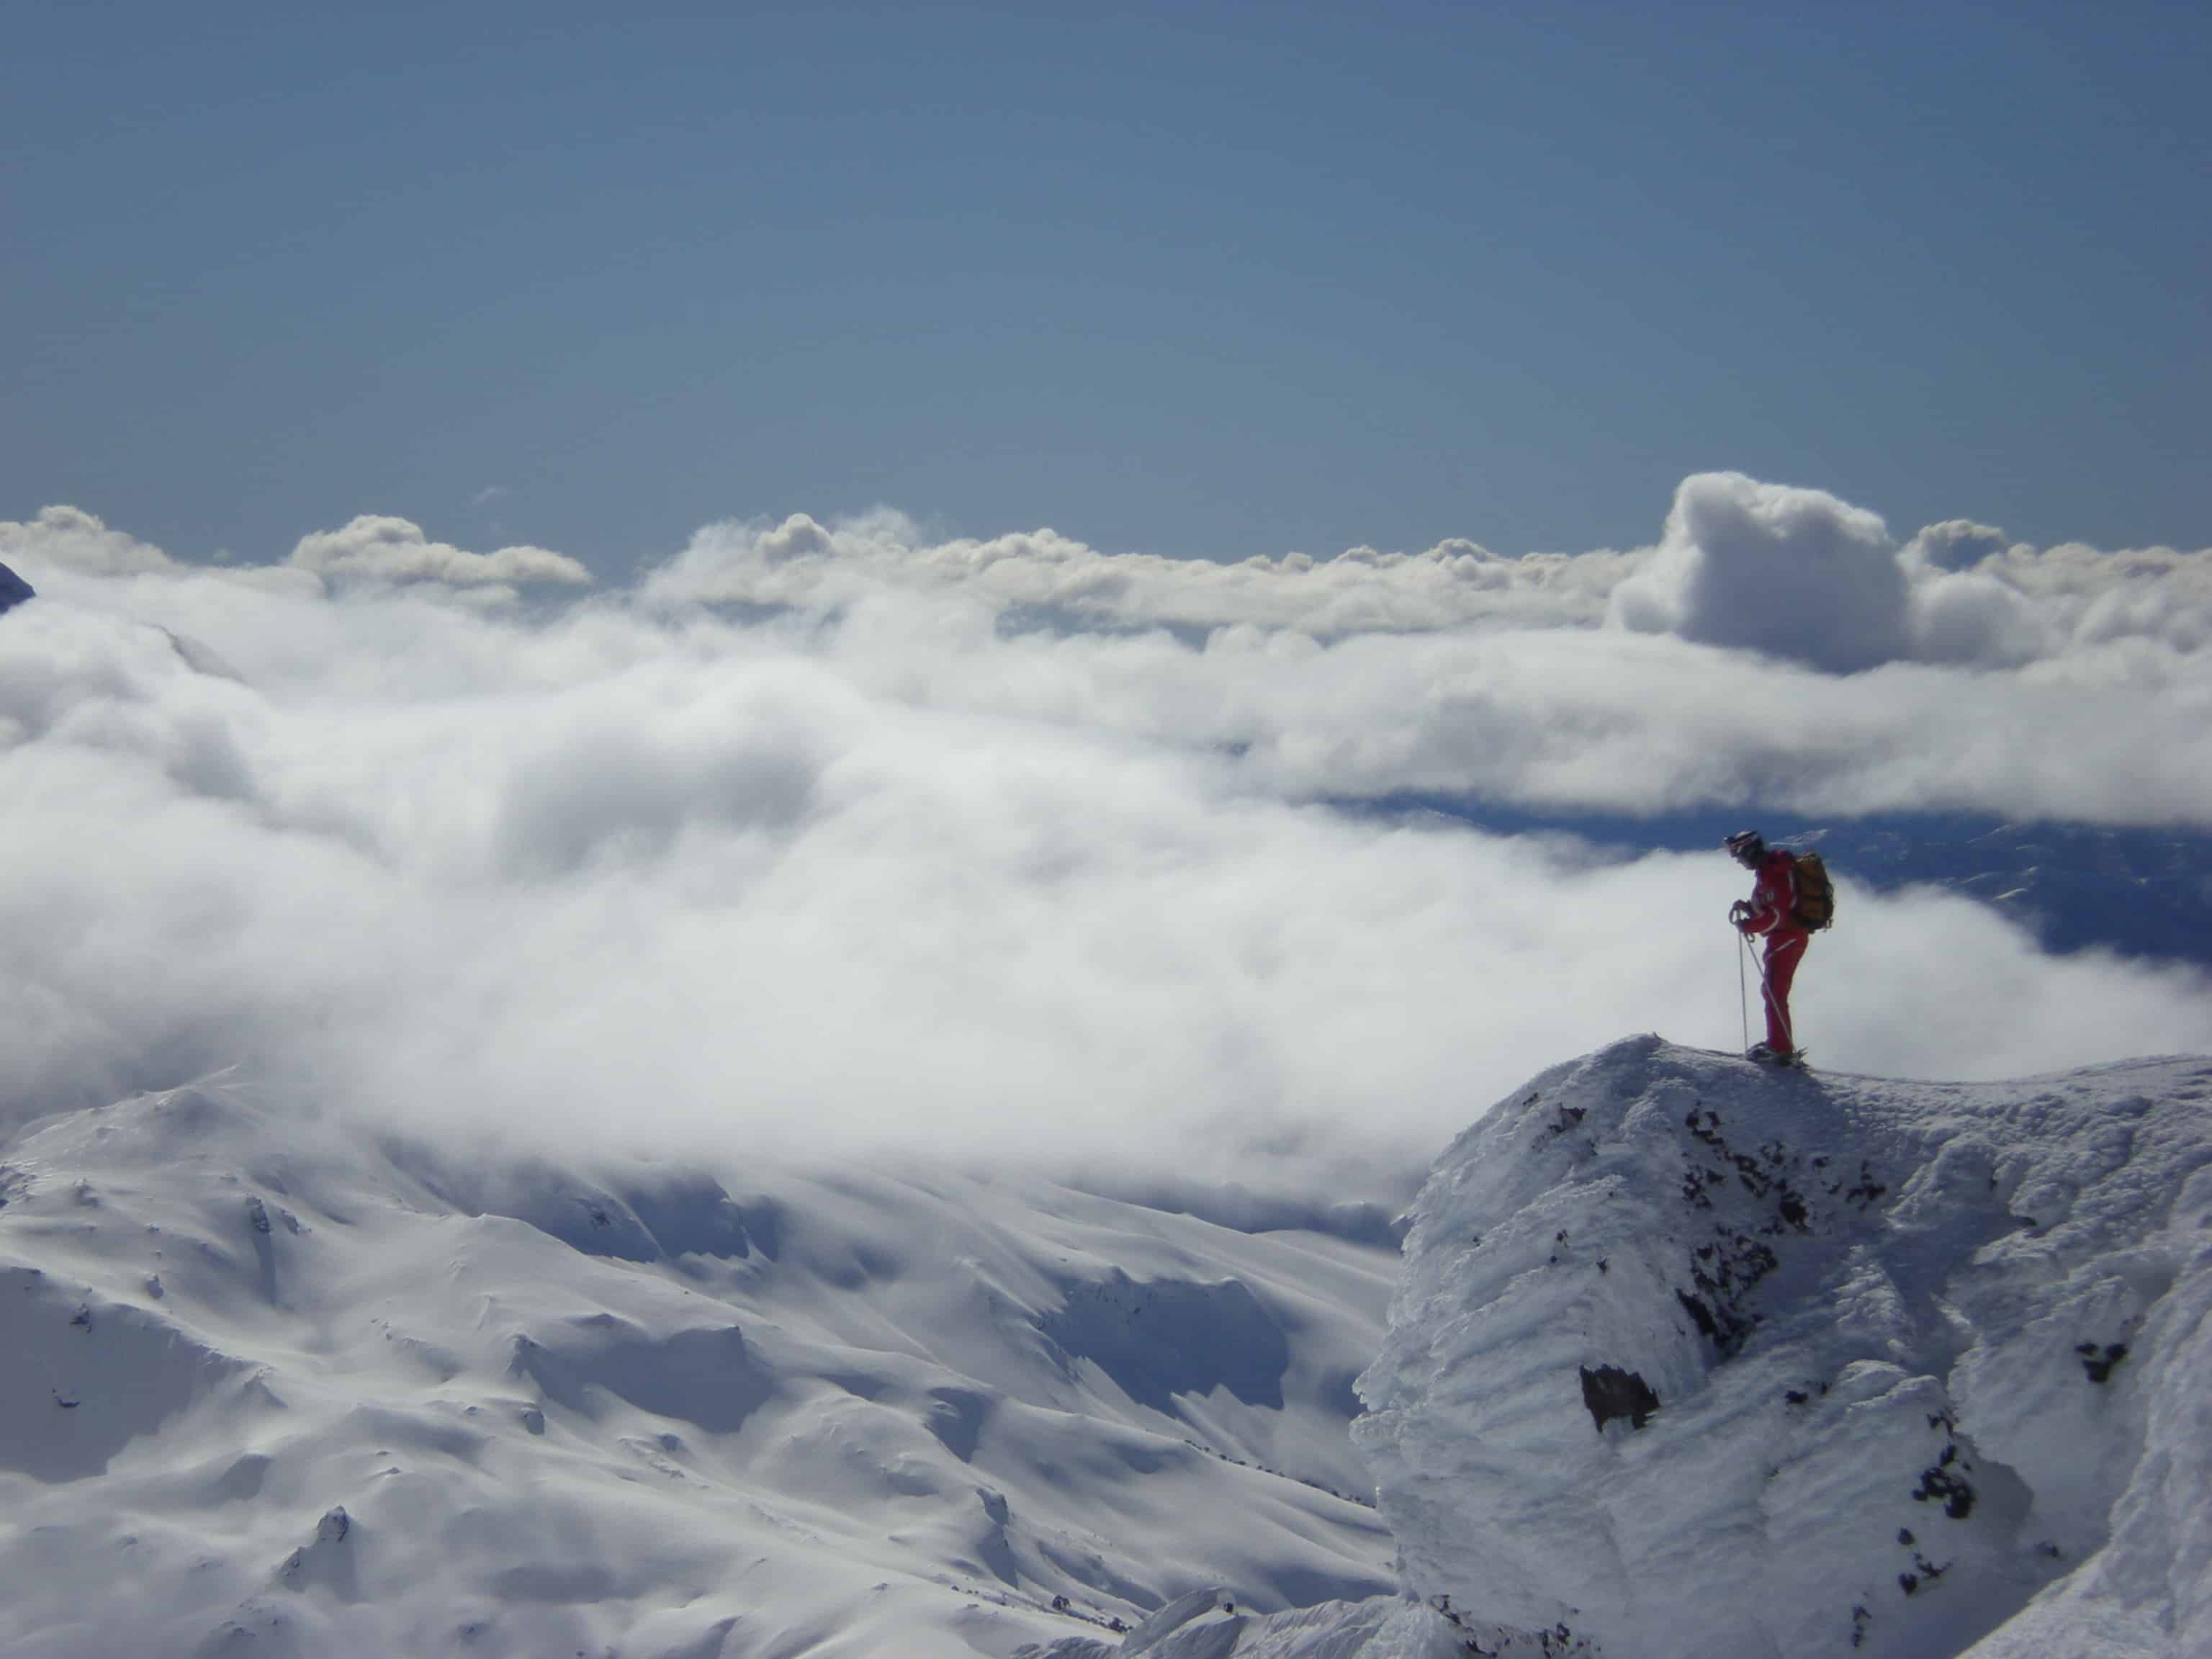 Summer Adventure Backcountry Skiing in Chile, September 2014